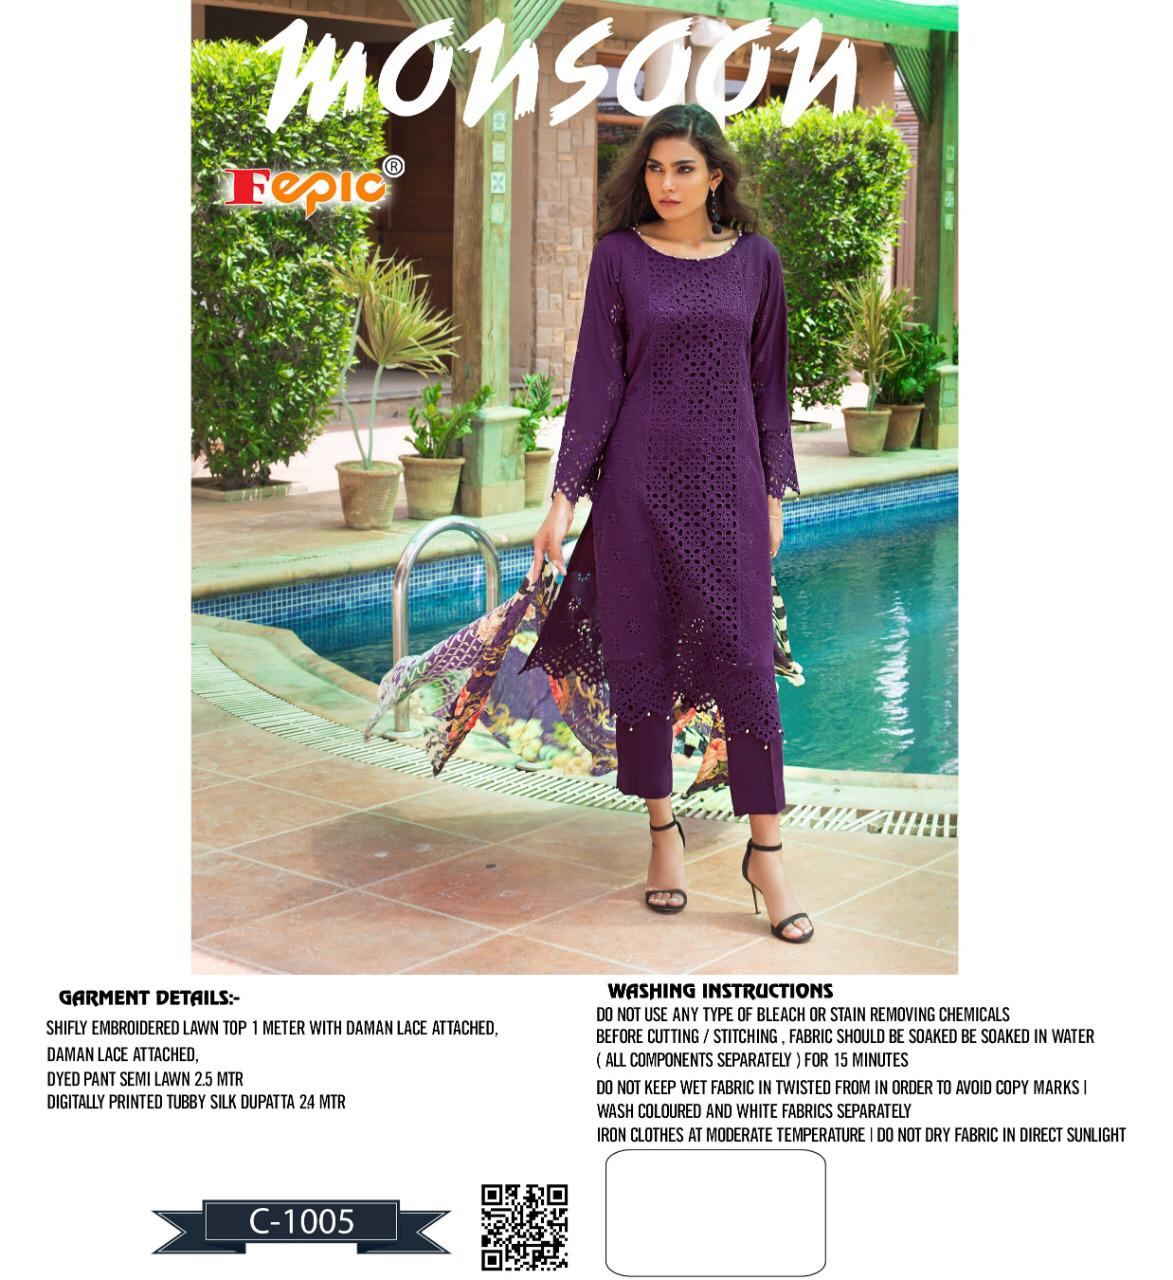 Fepic rosemeen monsoon pakistani concept dress Material collection